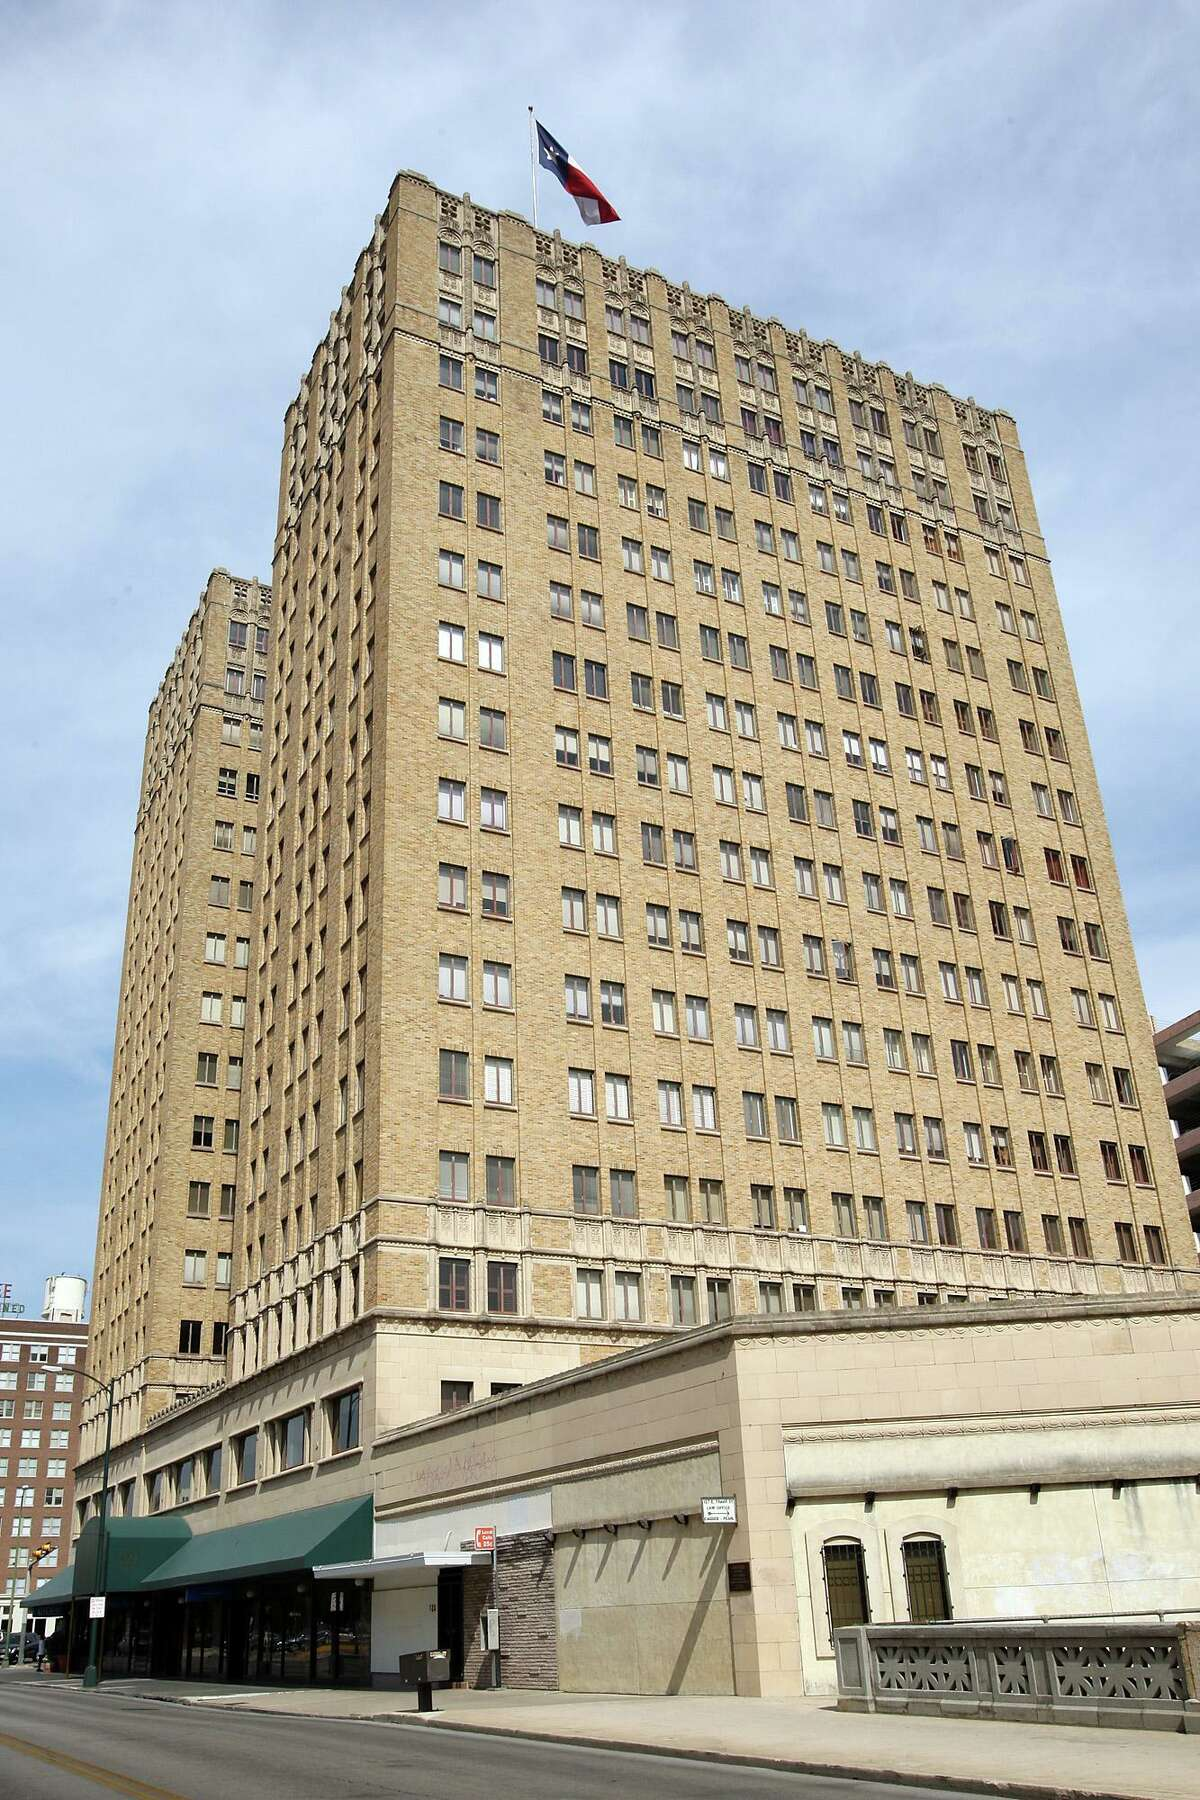 Weston Urban bought the Milam Building in 2016 and two properties between it and the river earlier this month.